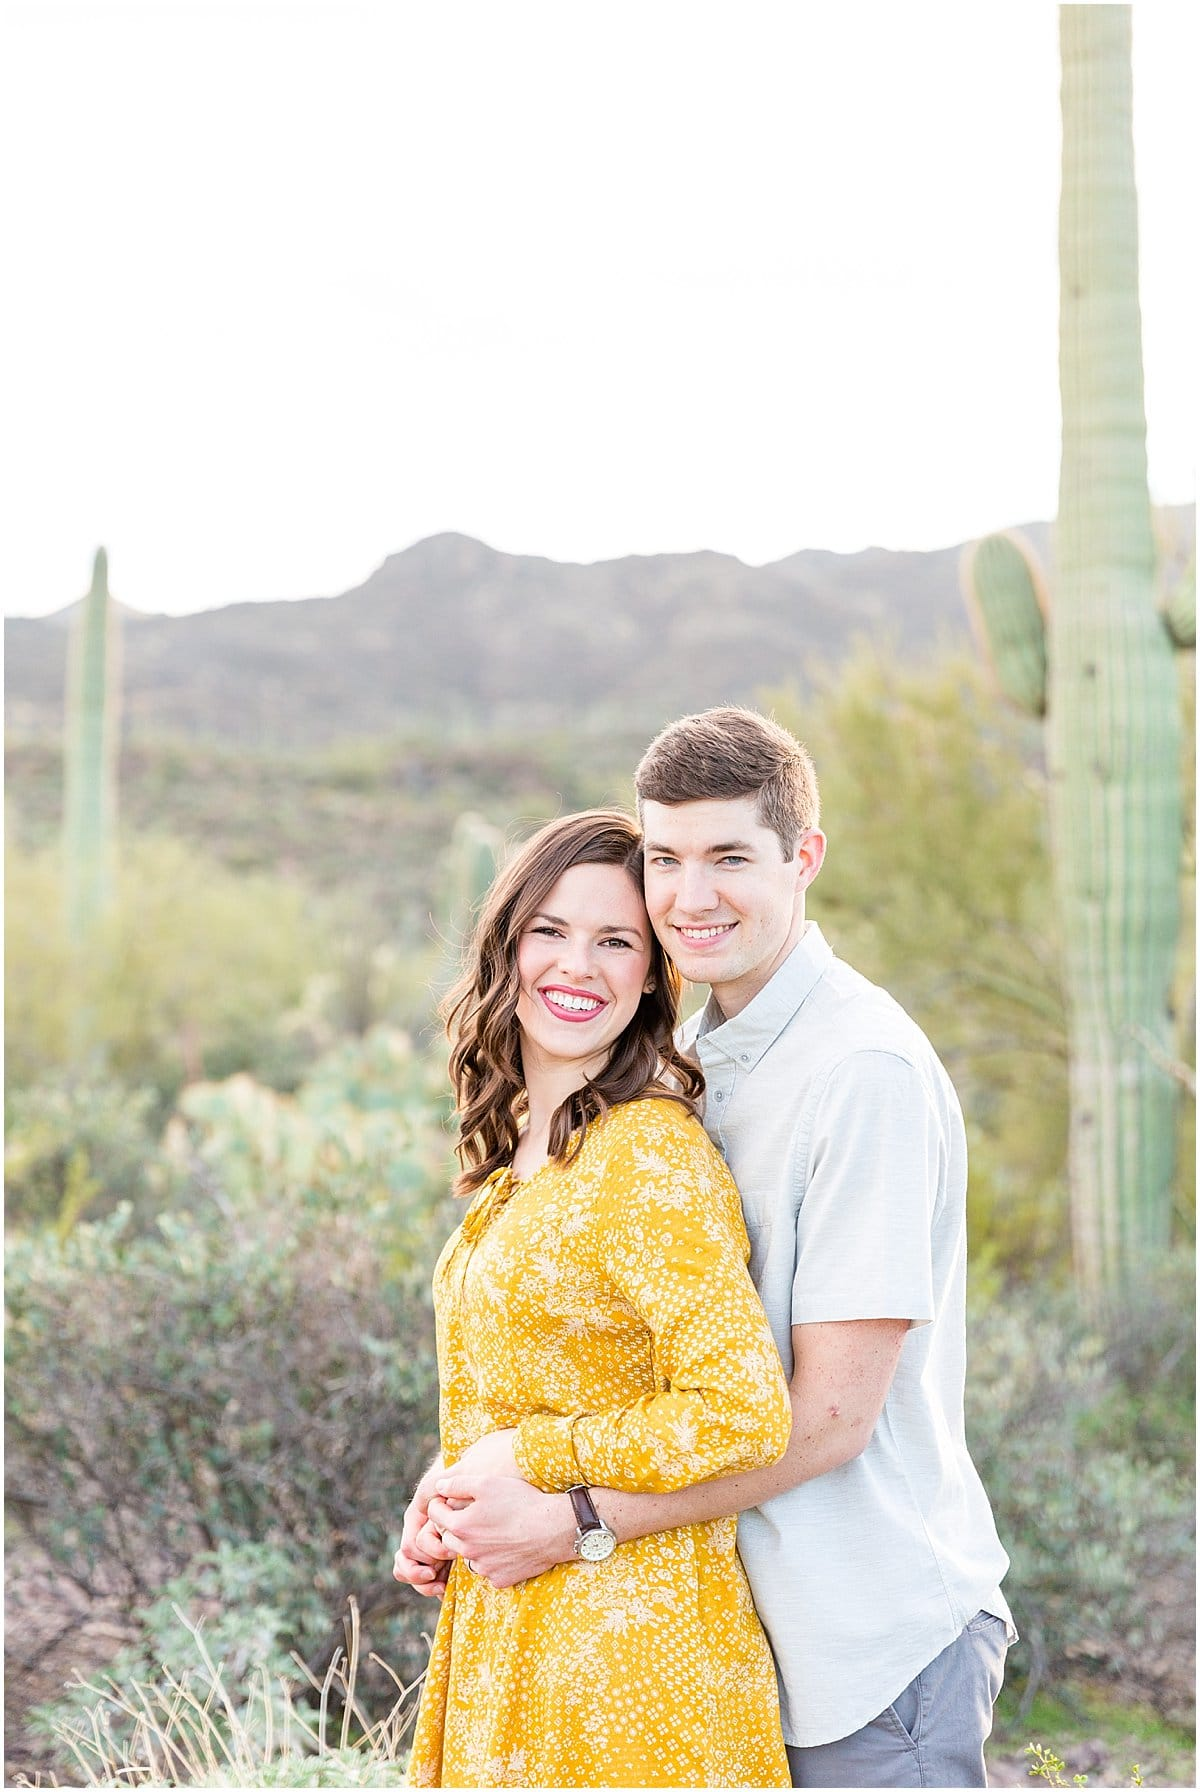 married-arizona-desert-cassidymrphotography_0023